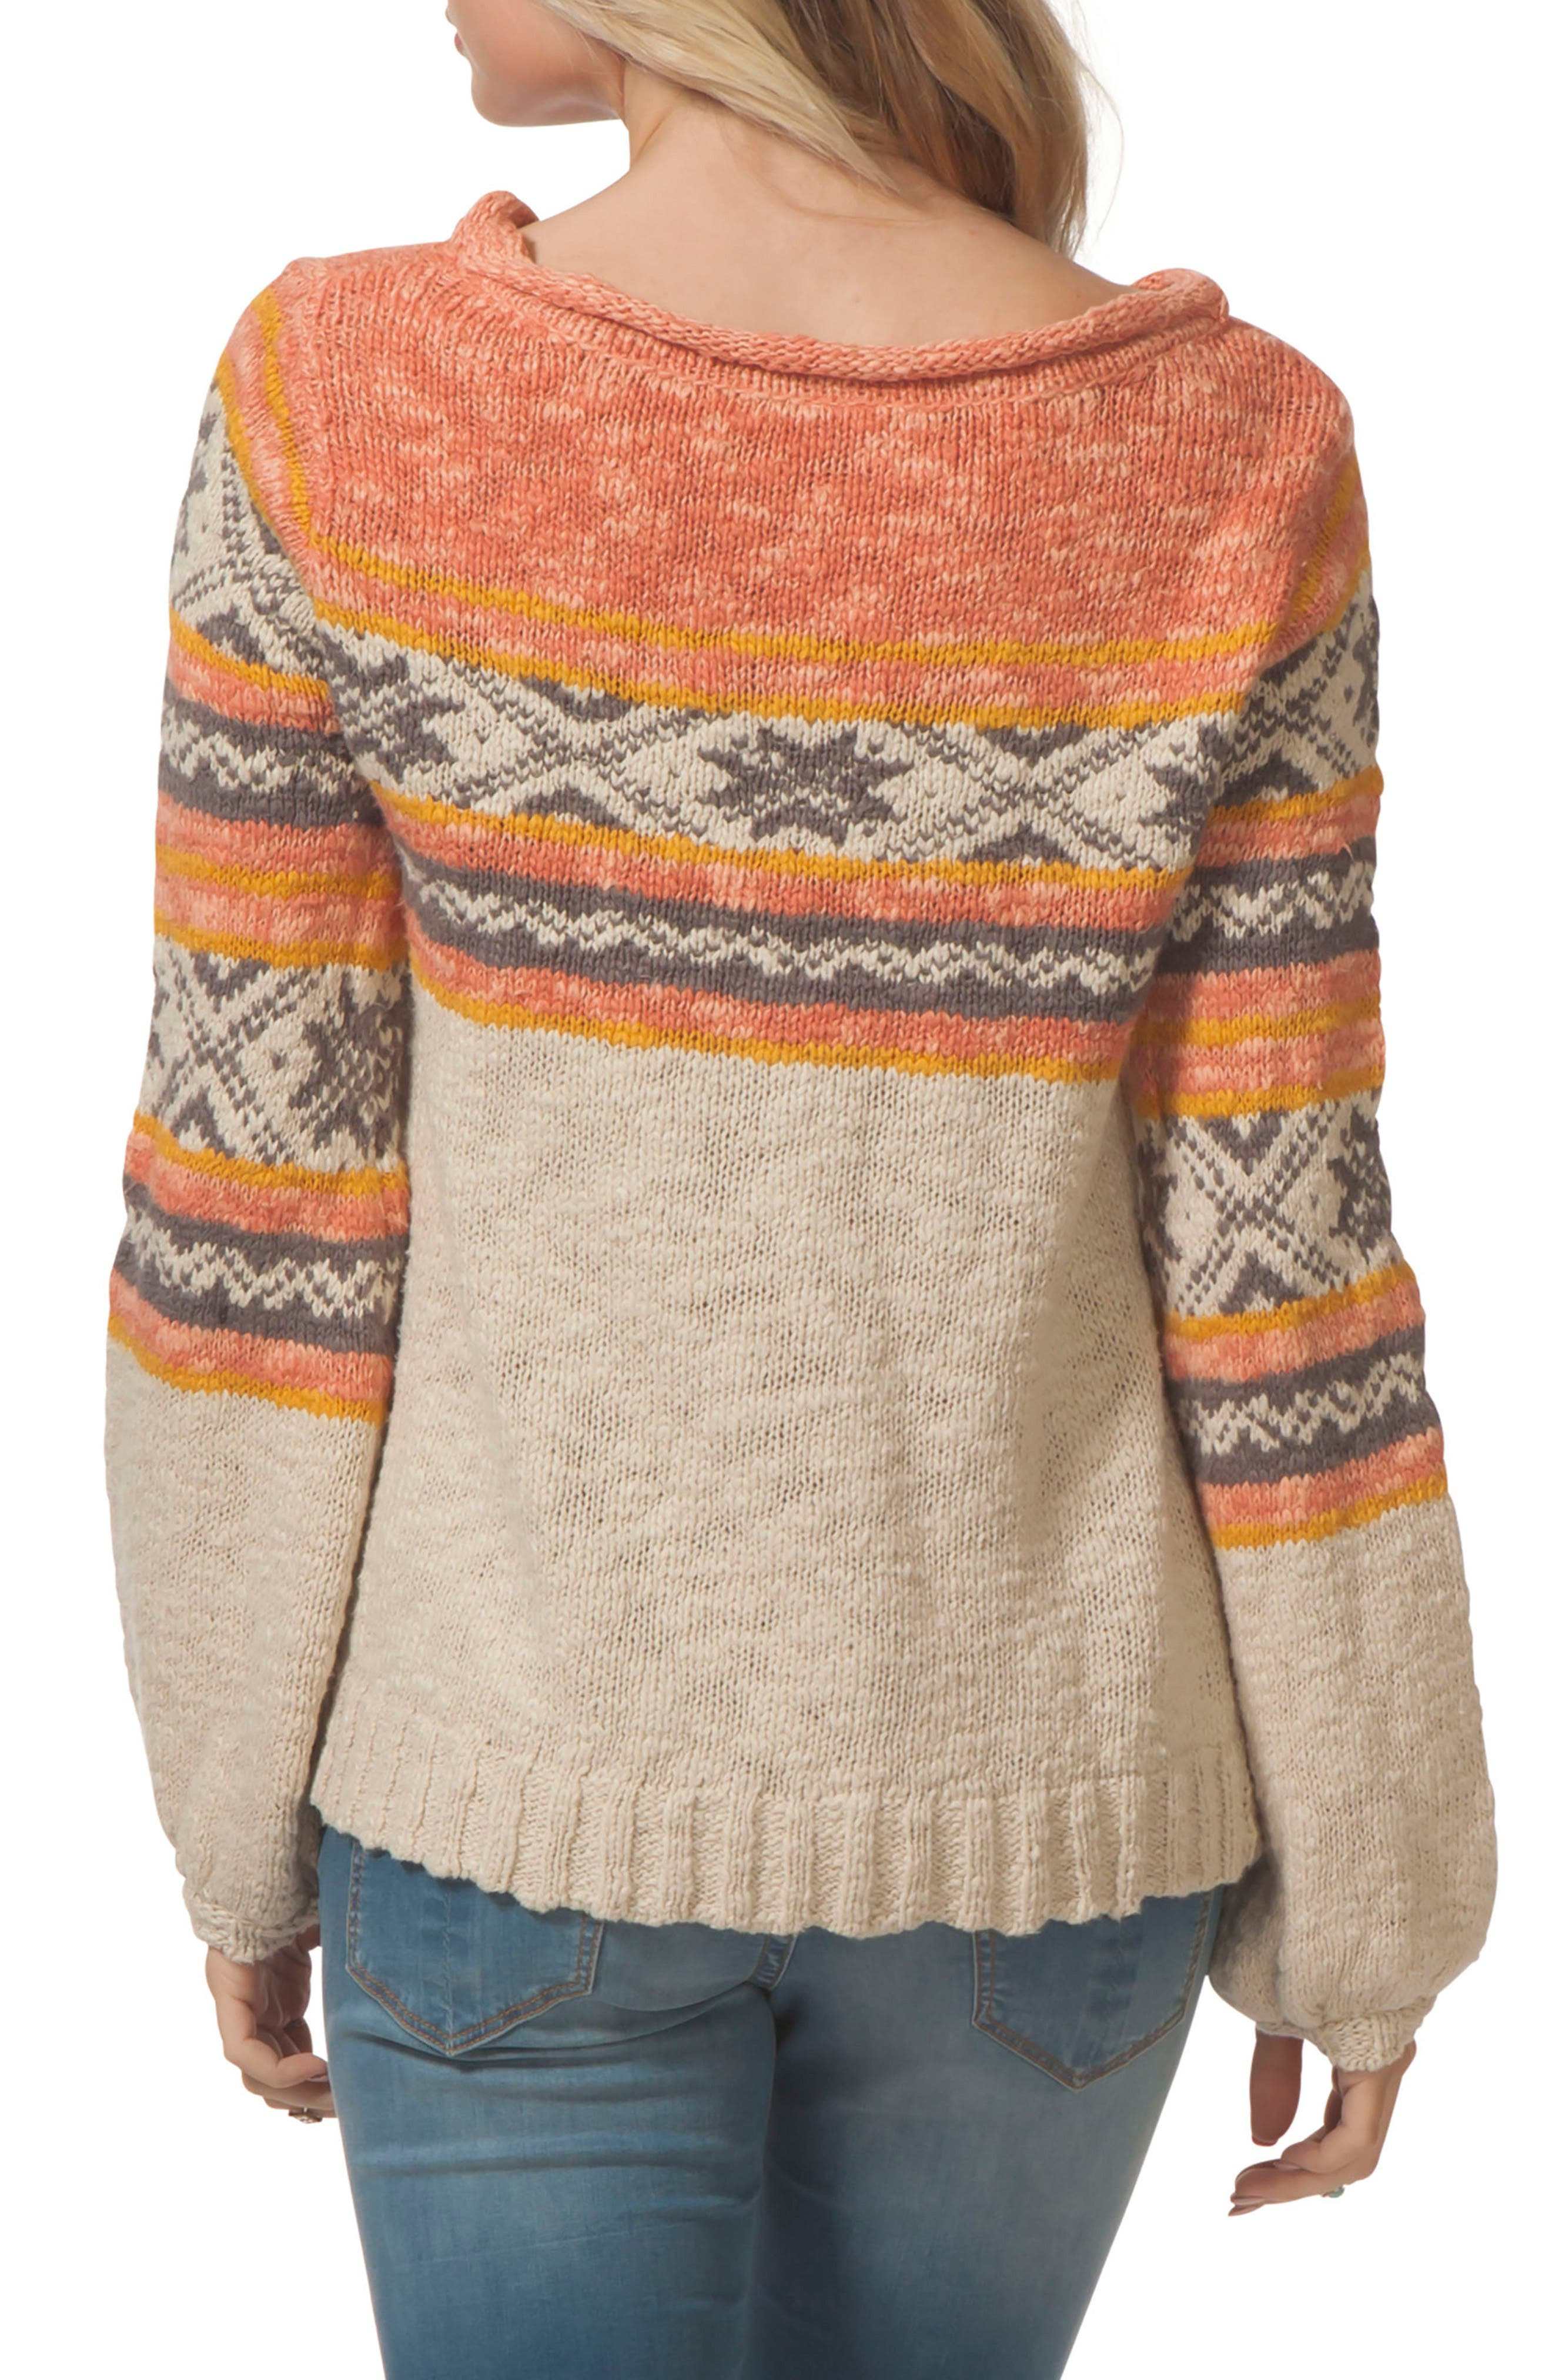 Snowed In Sweater,                             Alternate thumbnail 2, color,                             901